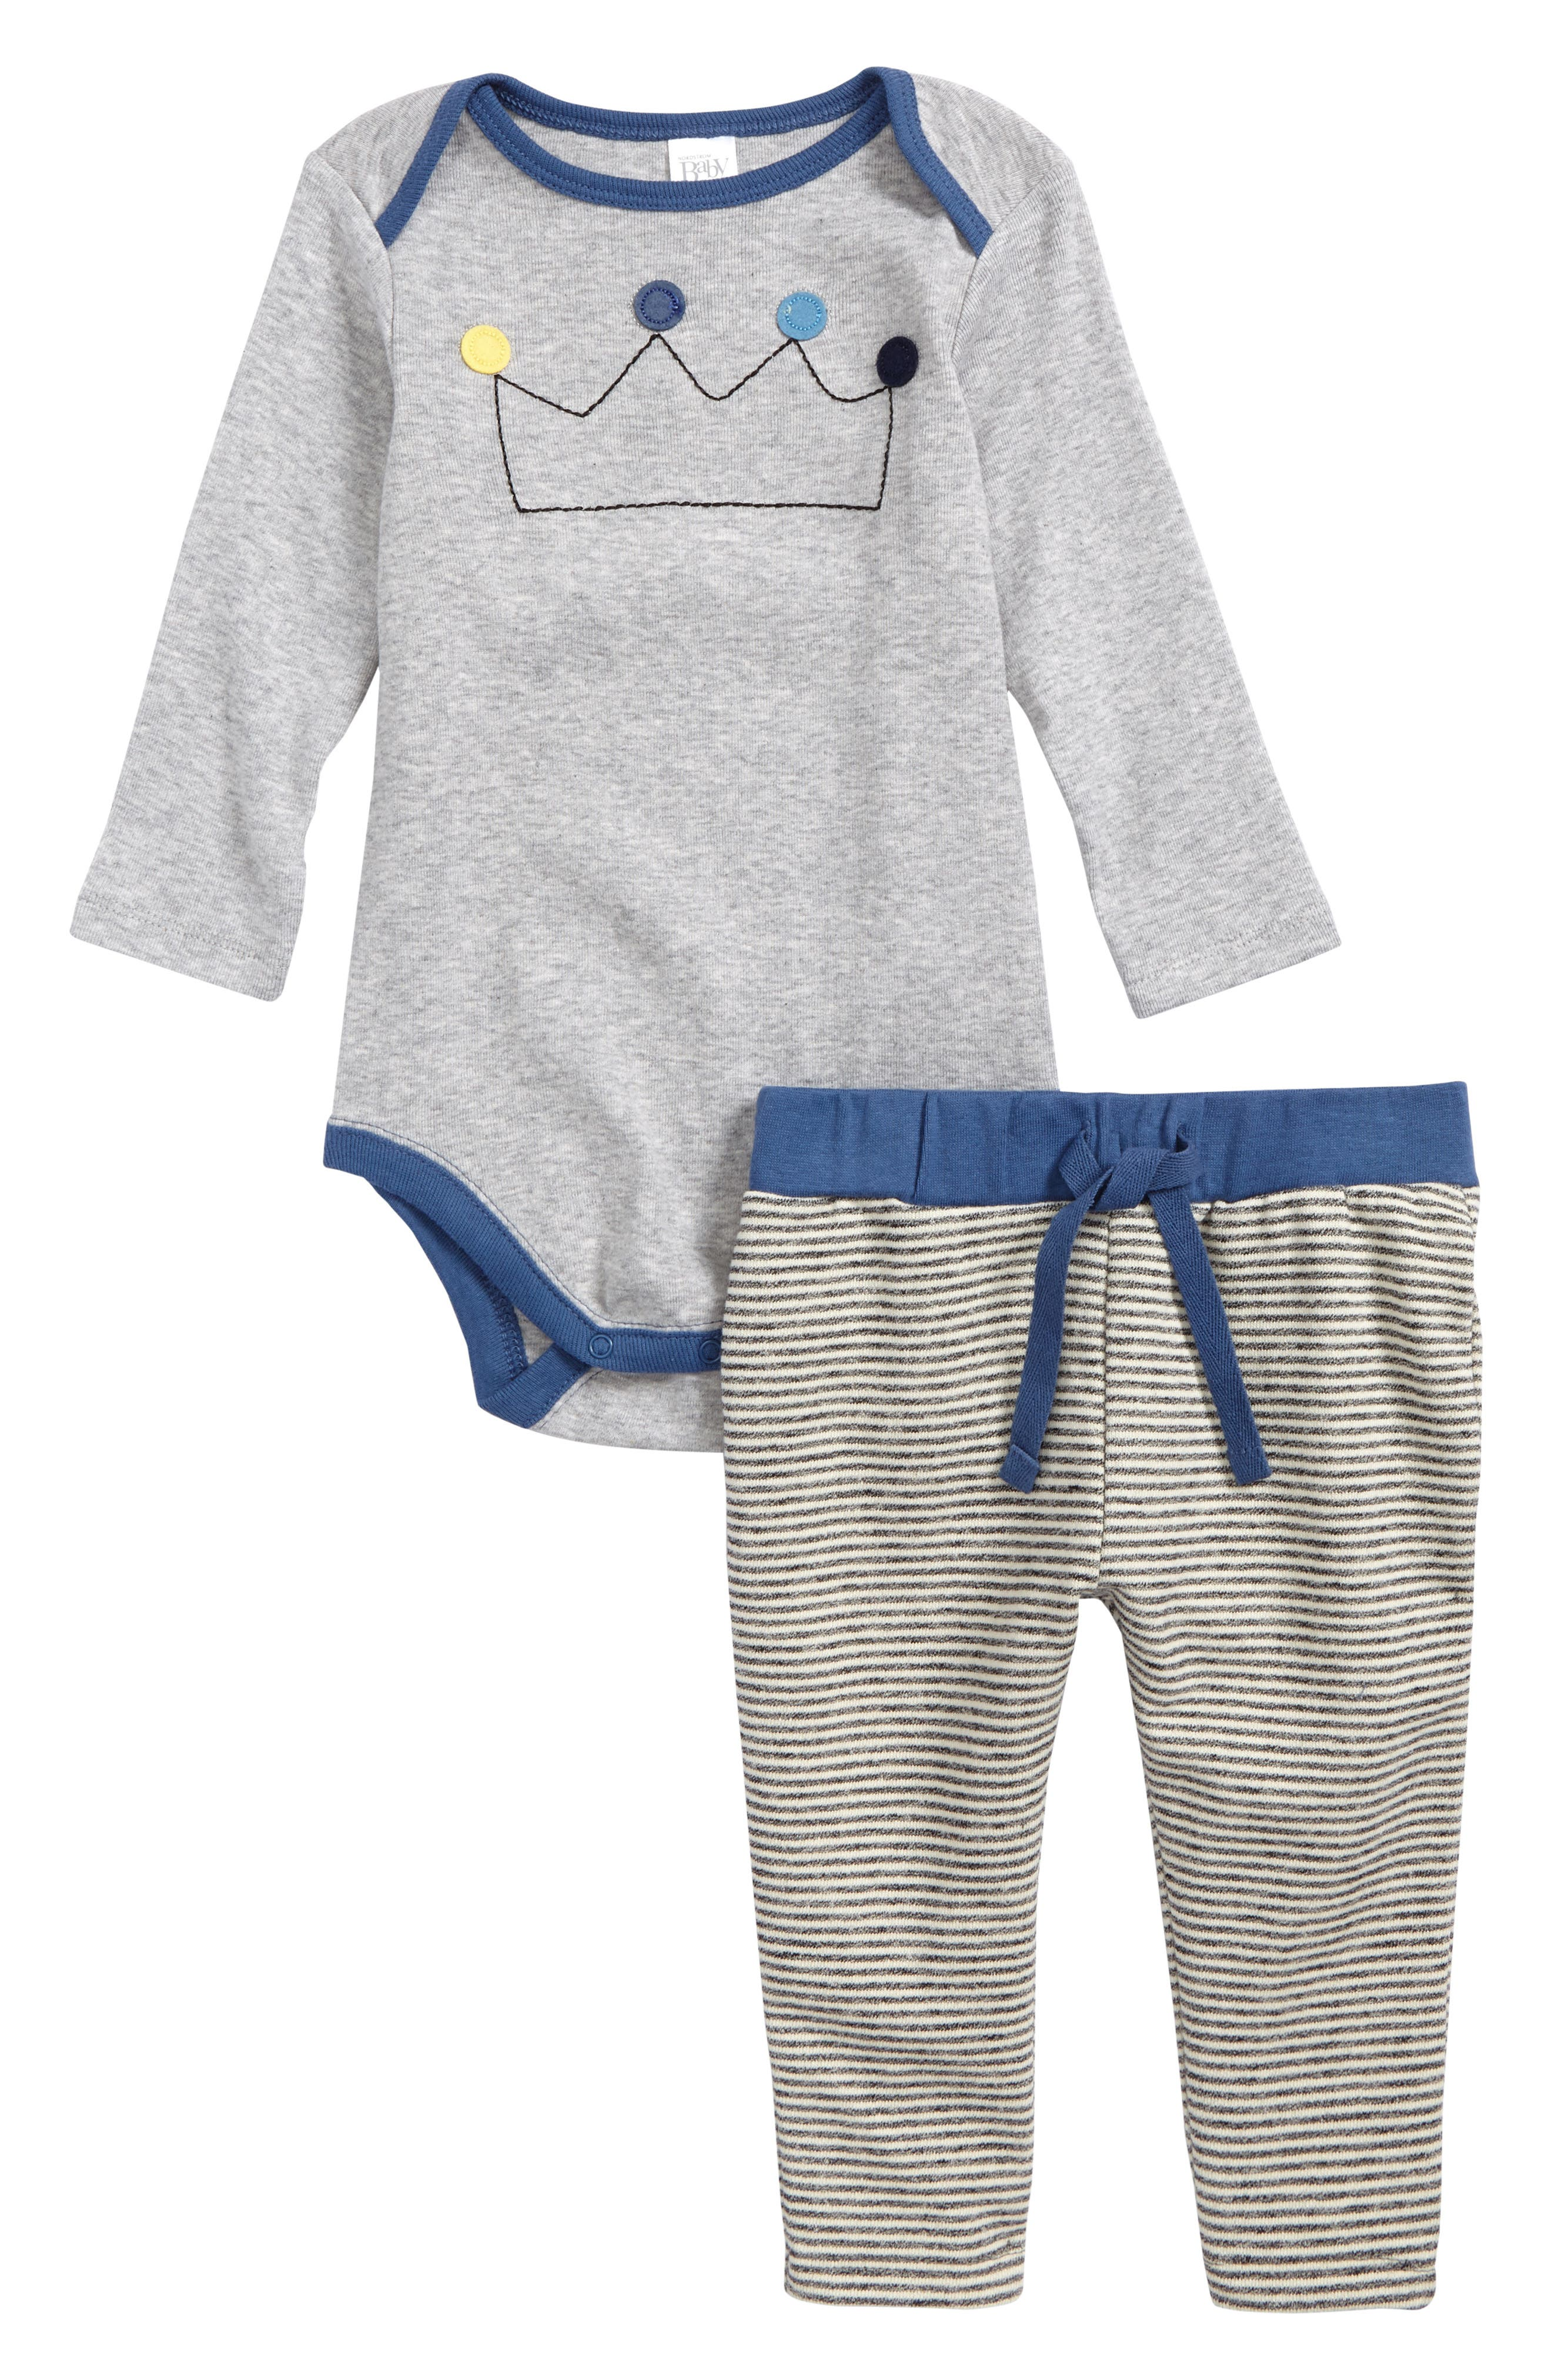 Appliqué Bodysuit & Sweatpants Set,                         Main,                         color, 050